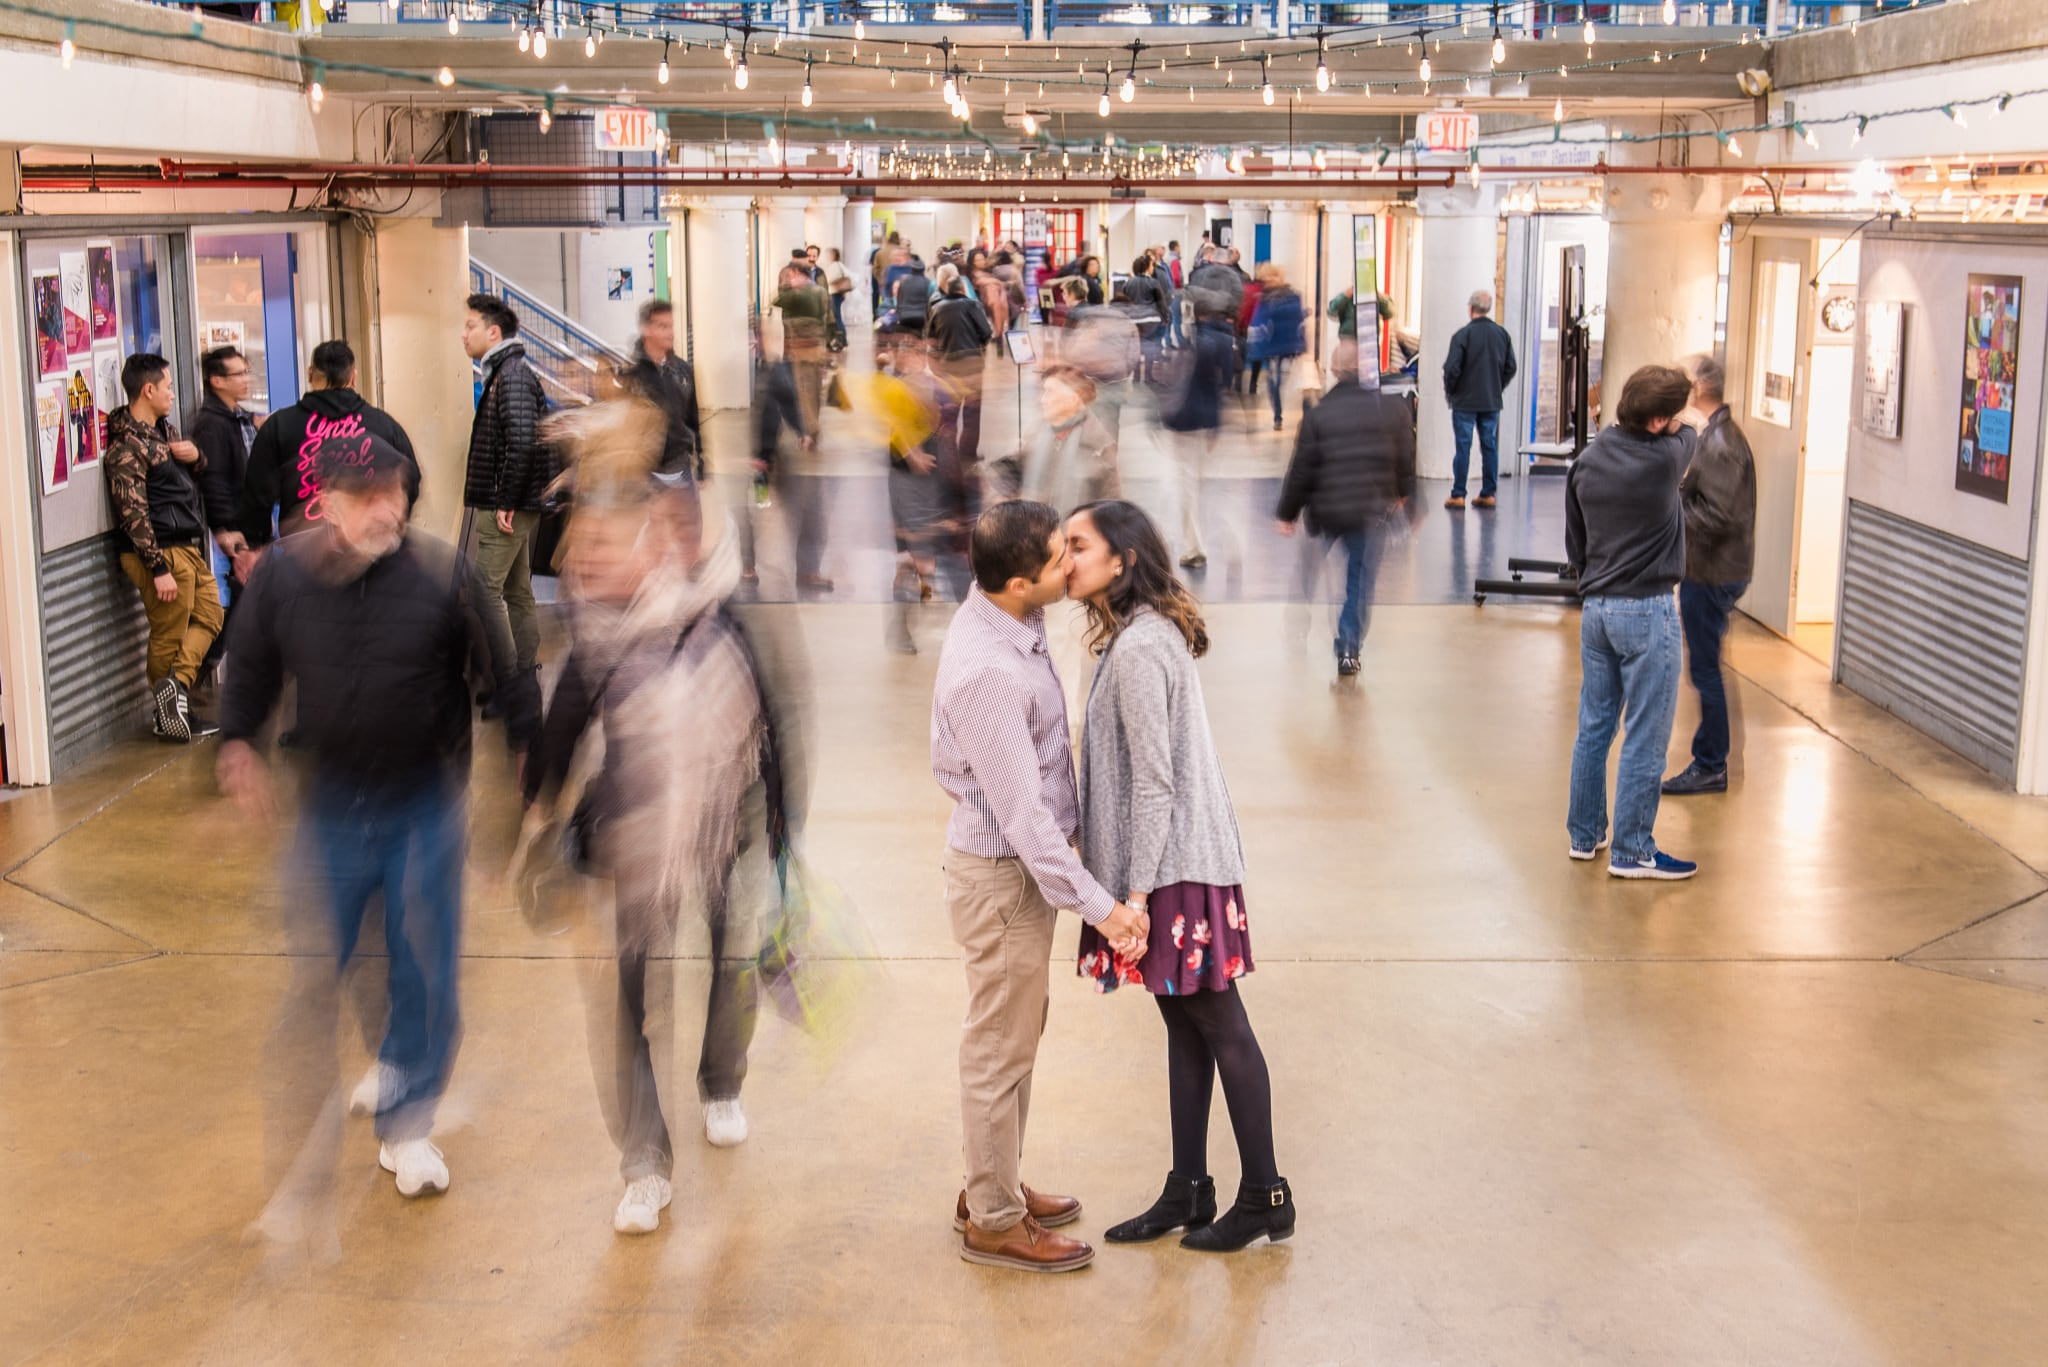 An engaged couple shares a kiss as they stand inside the busy Torpedo Factory Art Center during their engagement session in Old Town Alexandria